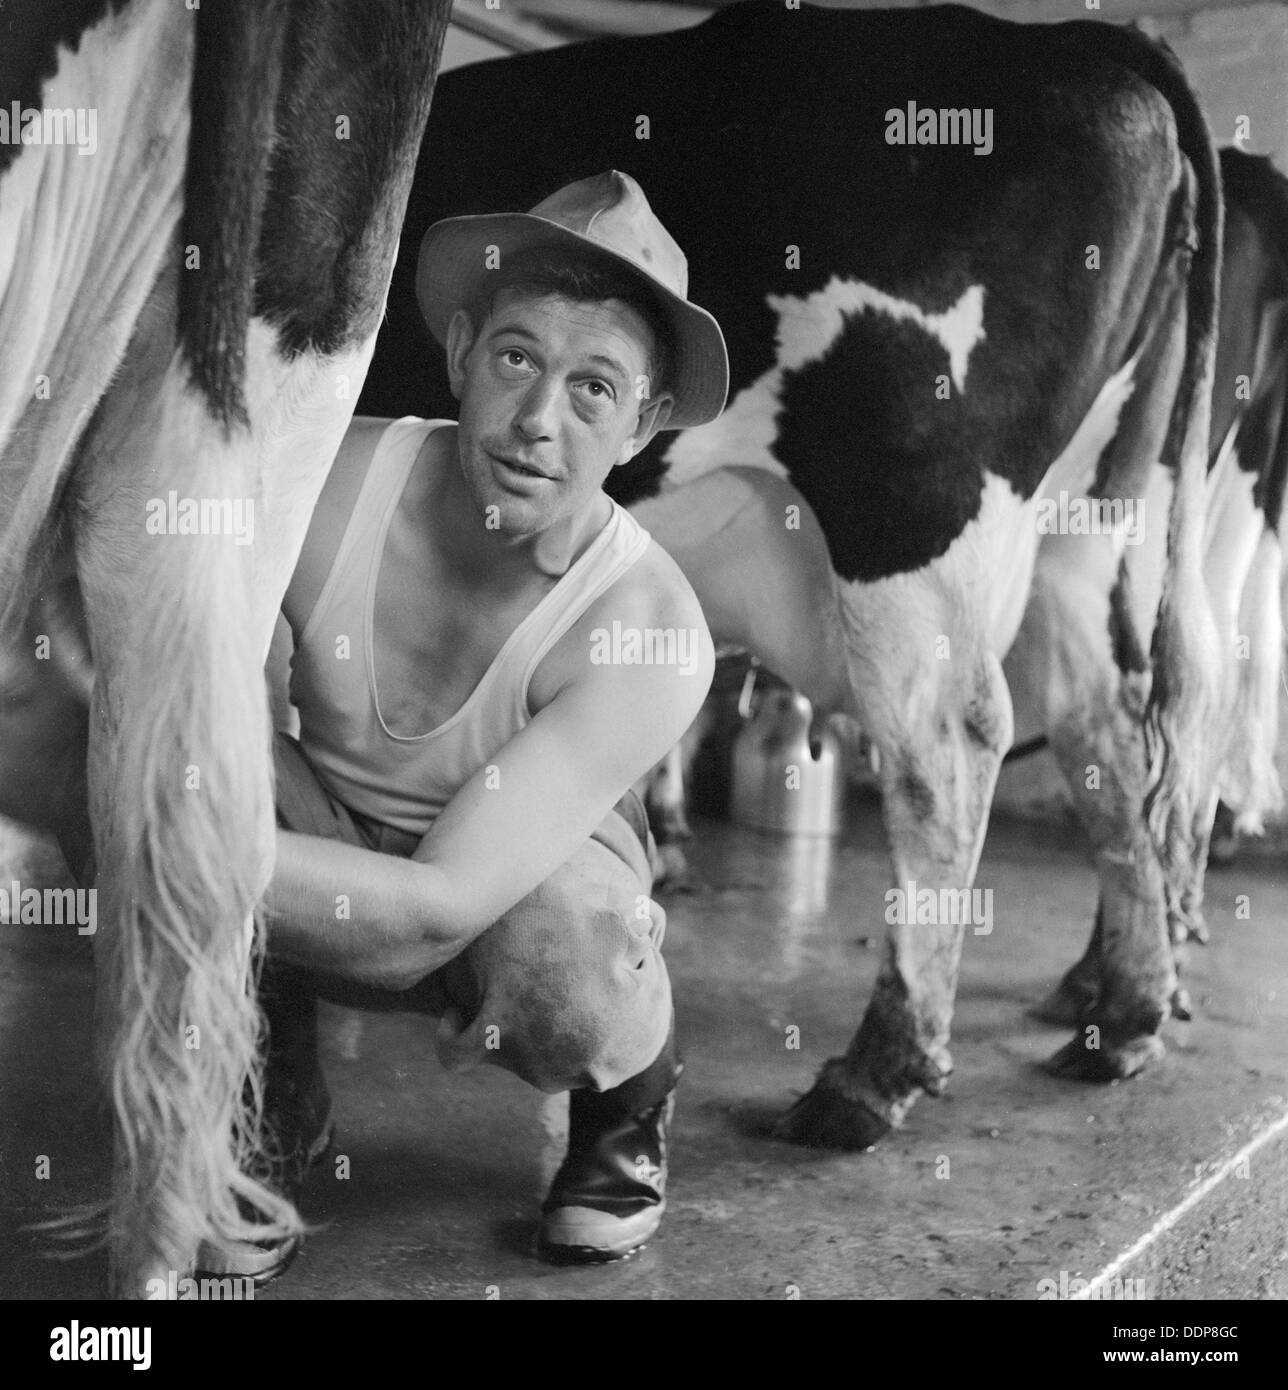 from Lachlan gay milking the farm